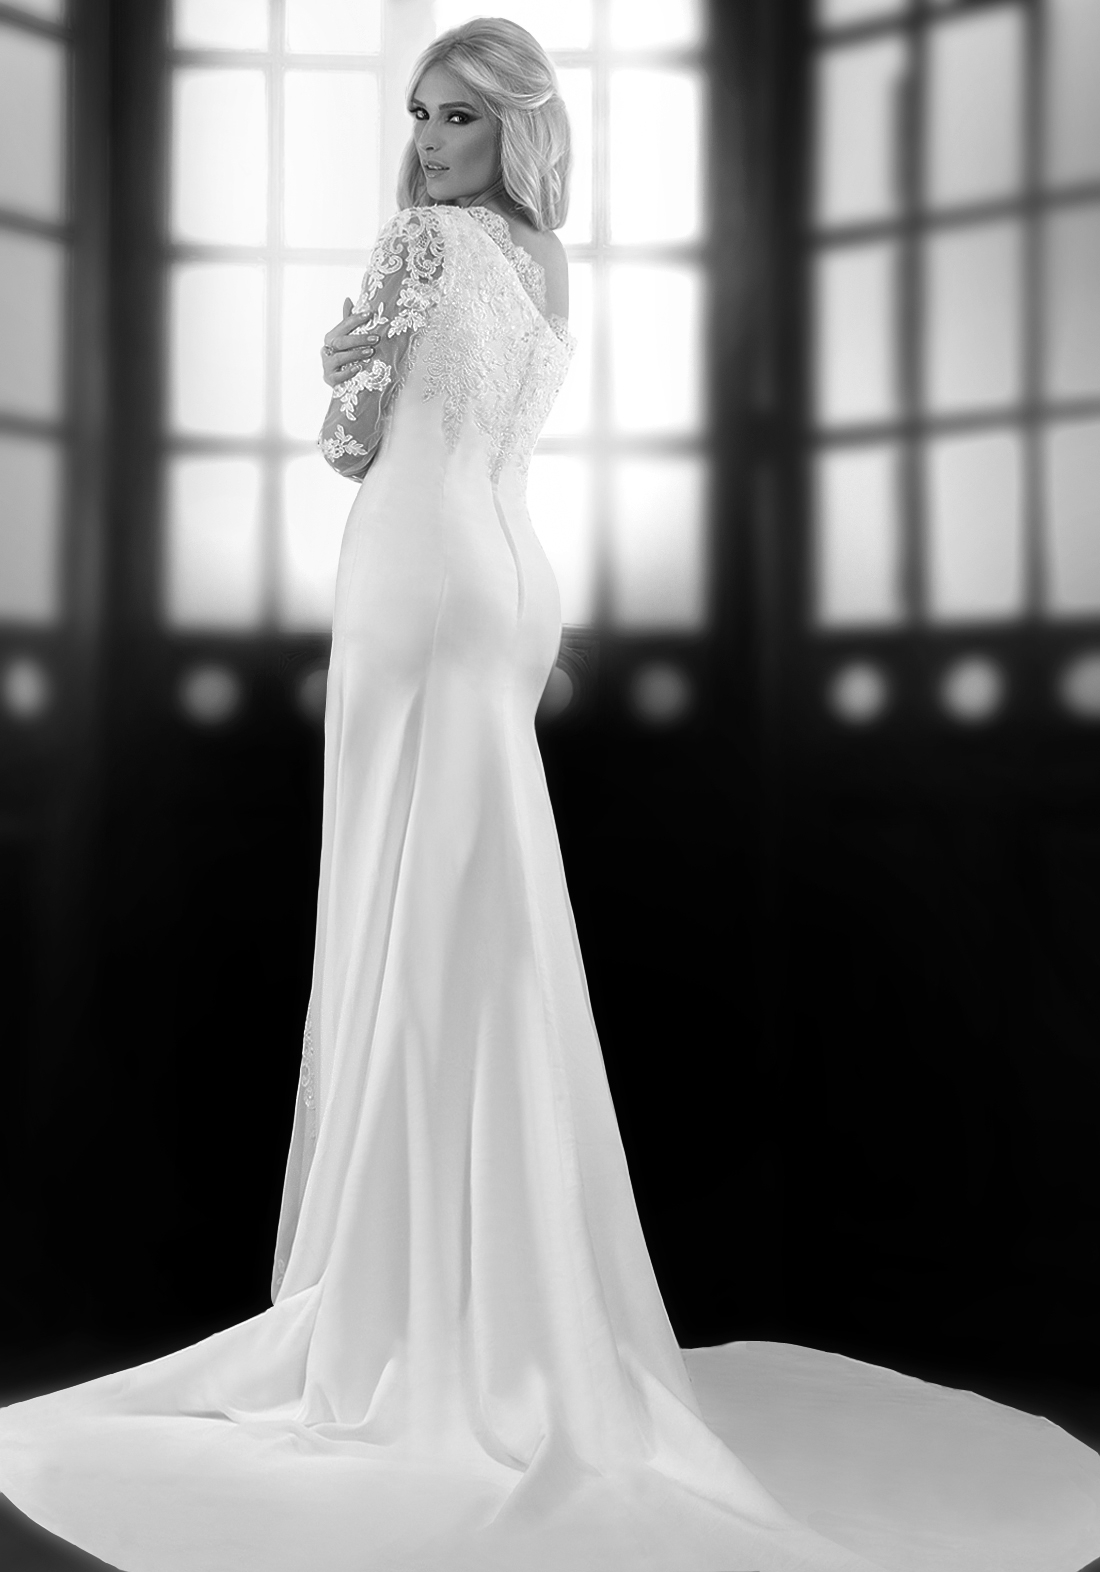 bien-savvy-wedding-dresses-2014-collection-42-01232014